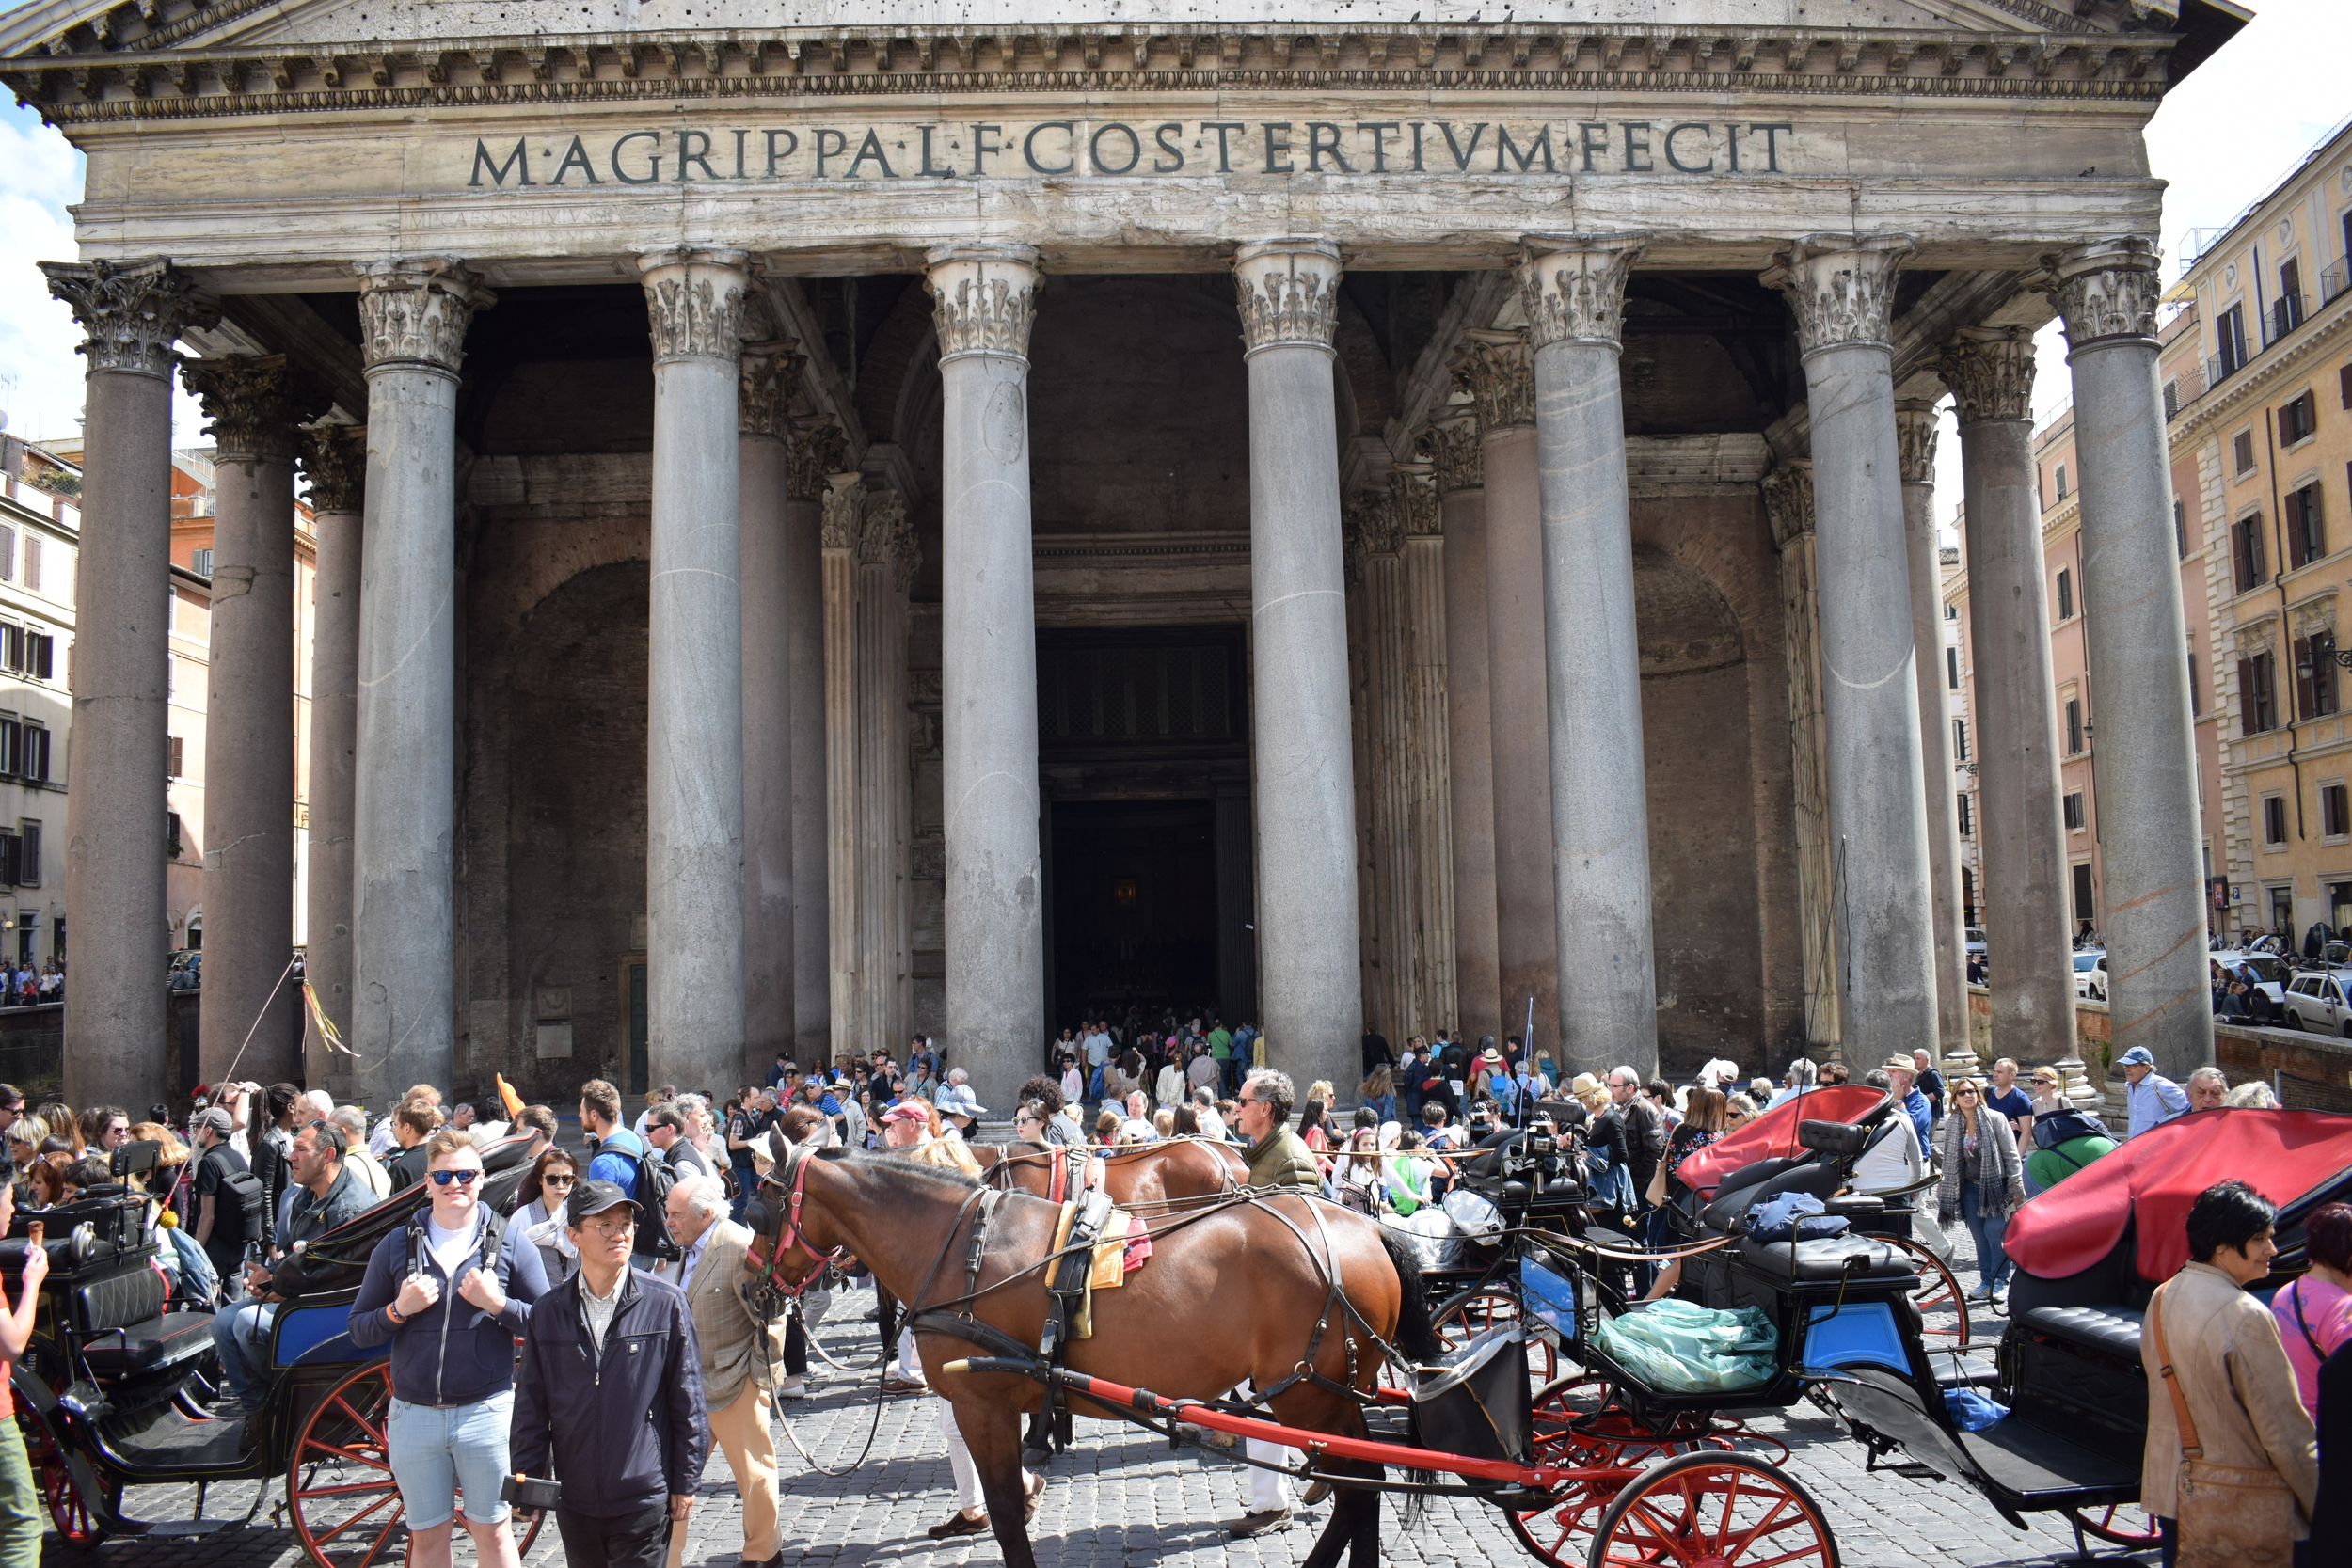 Trying to get a picture in front of the Pantheon was an uphill task due to the sheer number of people and, er, horses knocking around.